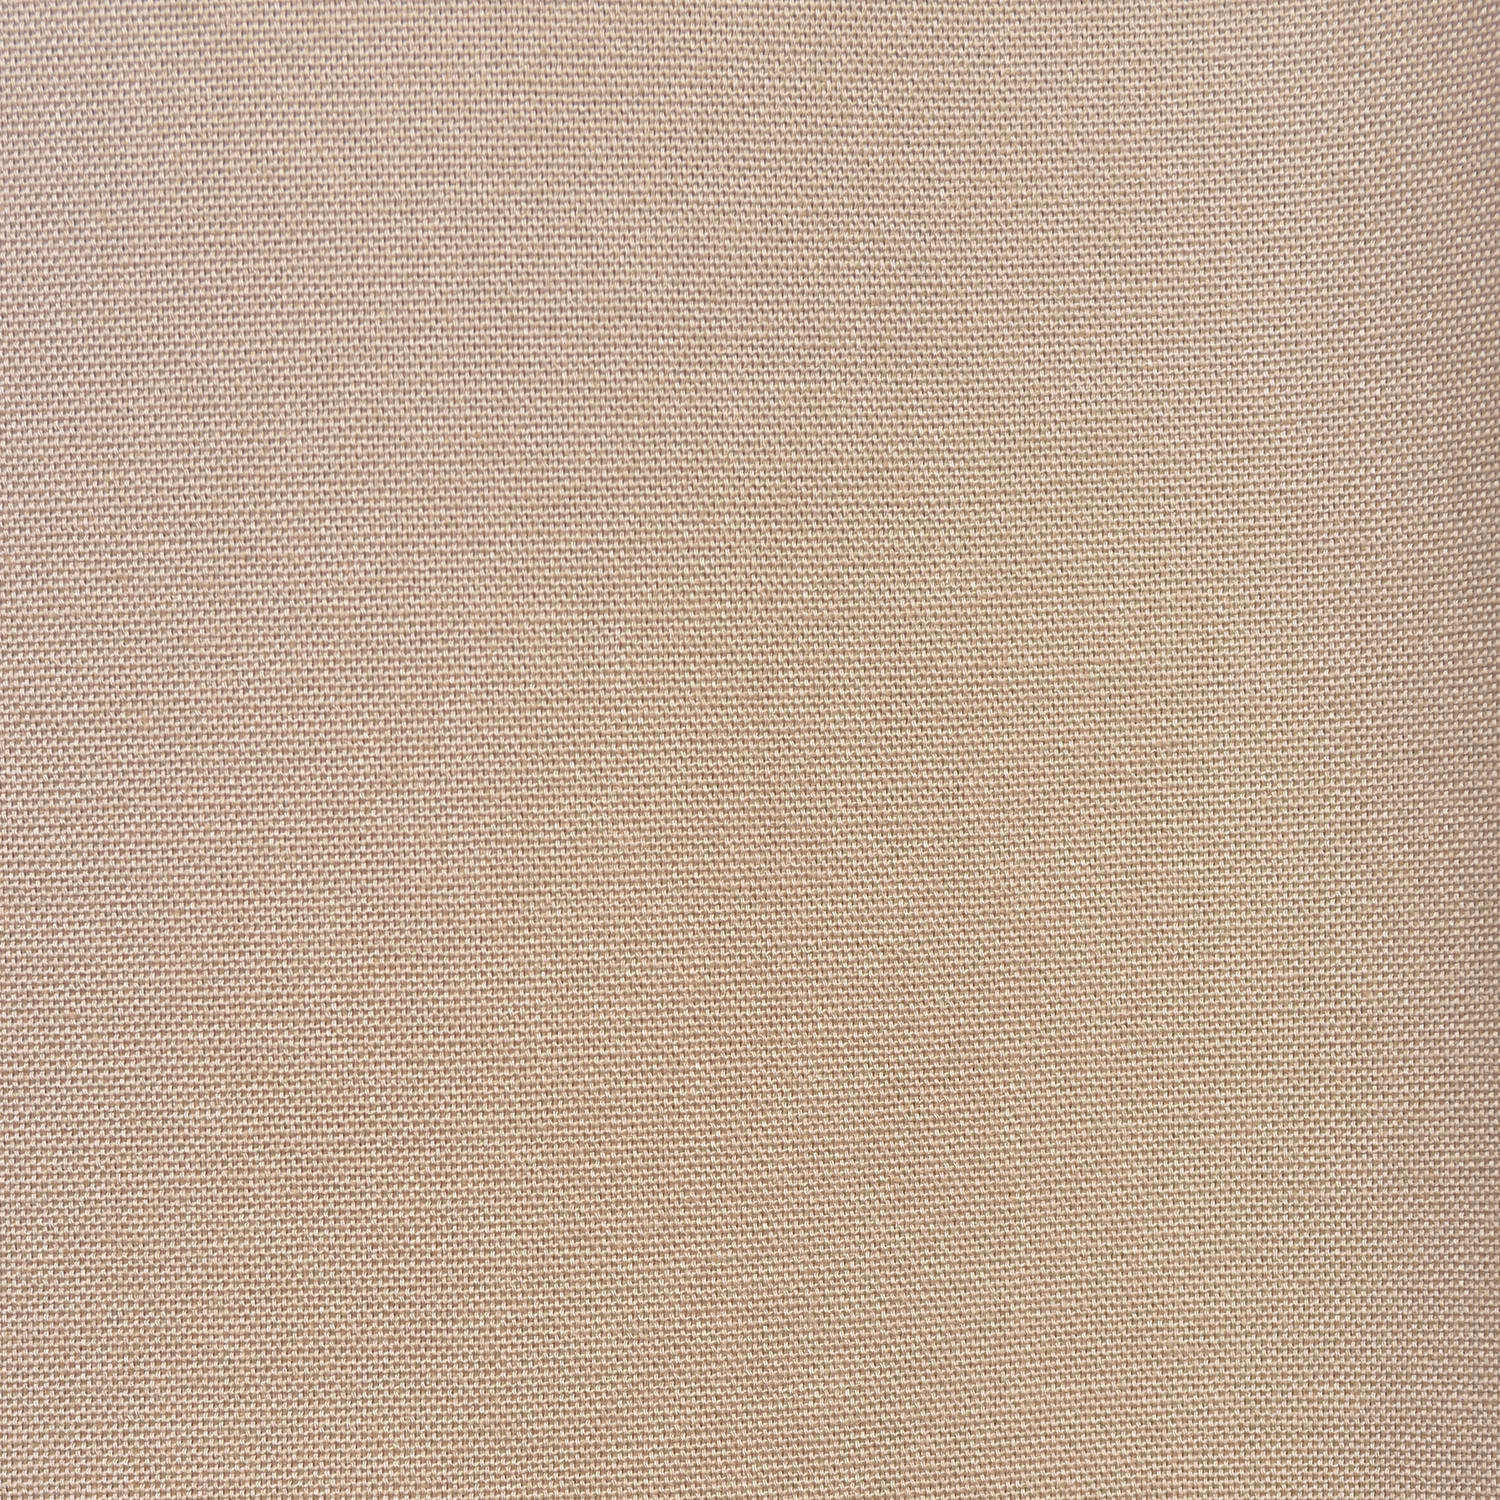 Rugged Tan Solid Cotton Swatch